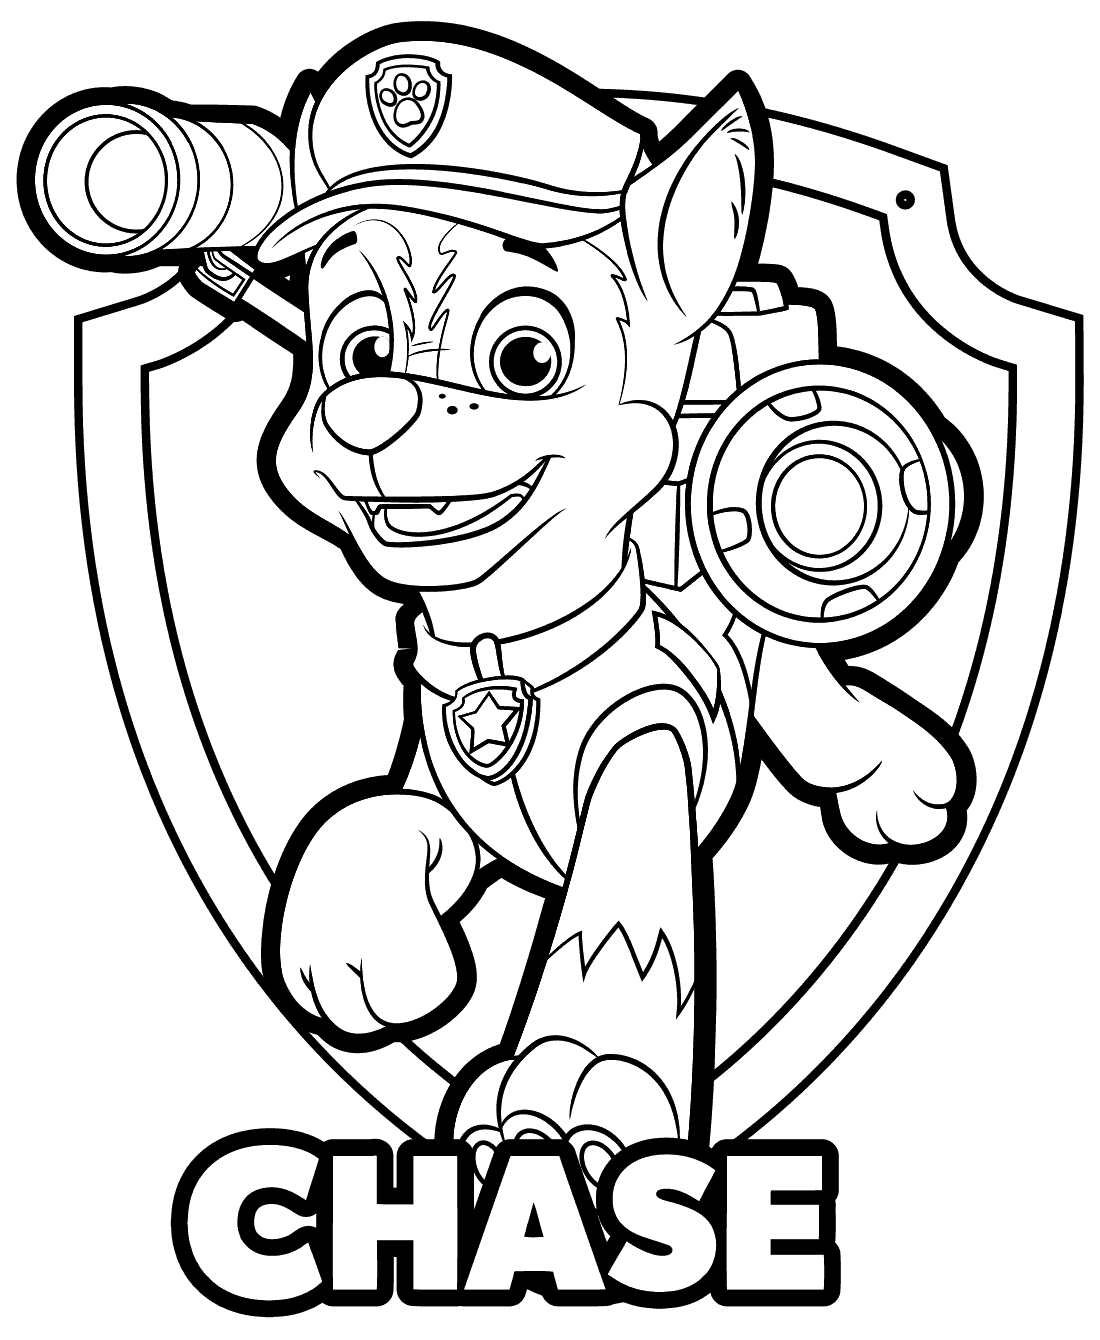 Paw Patrol Ausmalbilder Chase : Paw Patrol Chase Drawing At Getdrawings Com Free For Personal Use